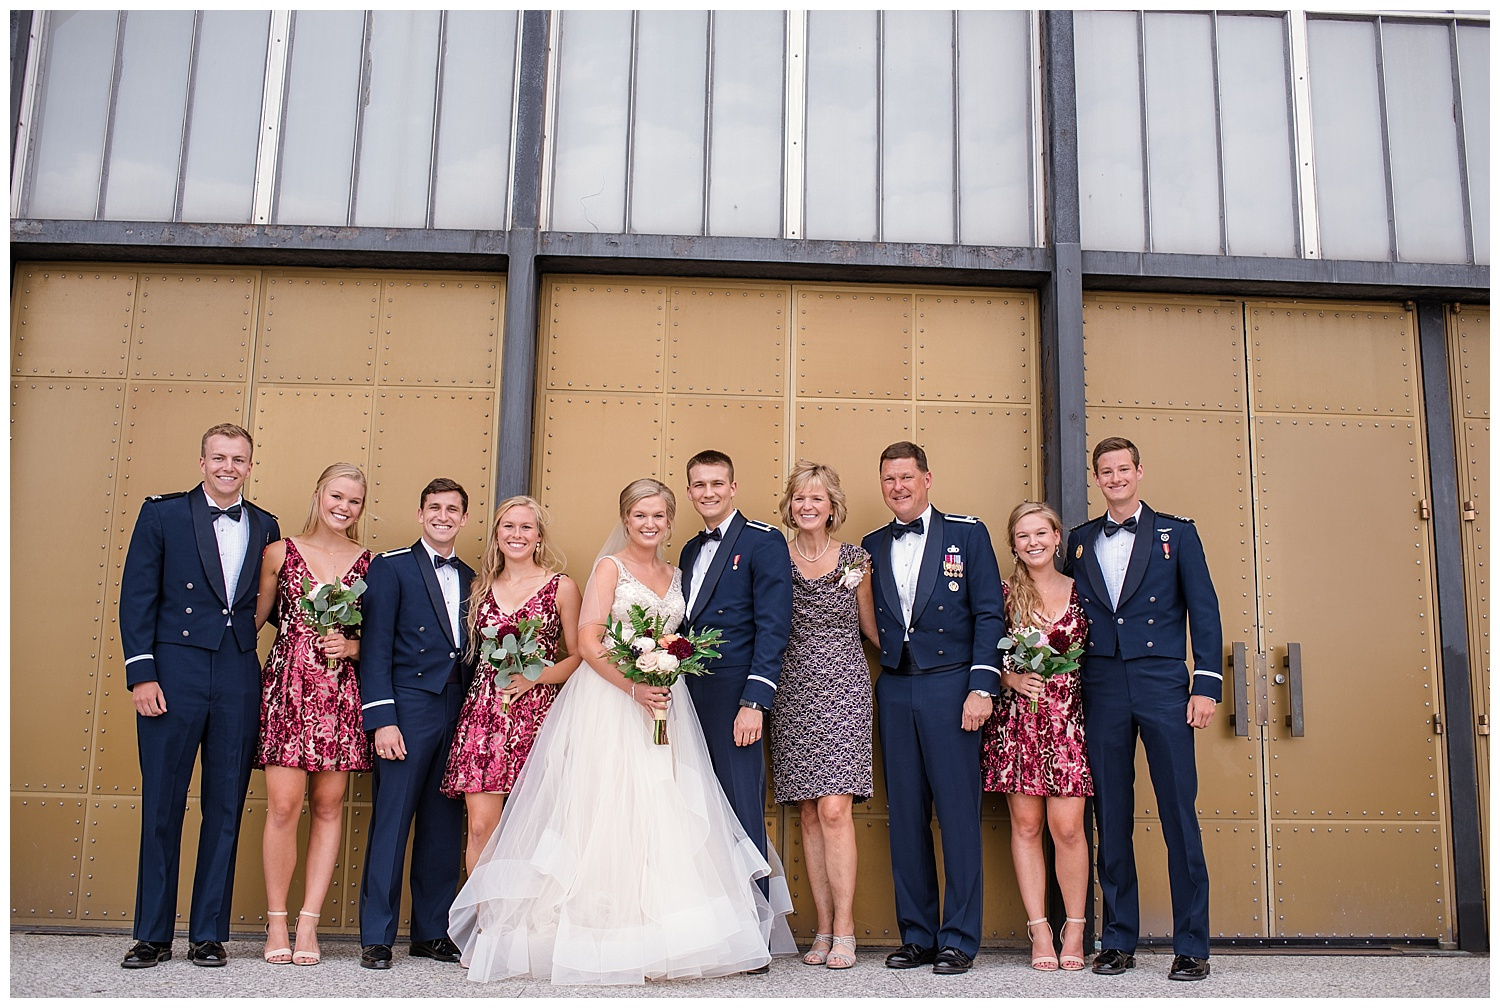 Military Wedding, Cadet Chapel Wedding, bride and groom, navy suits, dress blues, sparkly red bridesmaids dresses, bridal party, family photos, Colorado Wedding Photographer, Denver Wedding Photographer, Denver Elopement Photographer, Colorado Elopement Photographer, Rocky Mountain Wedding Photographer, Downtown Denver Photographer